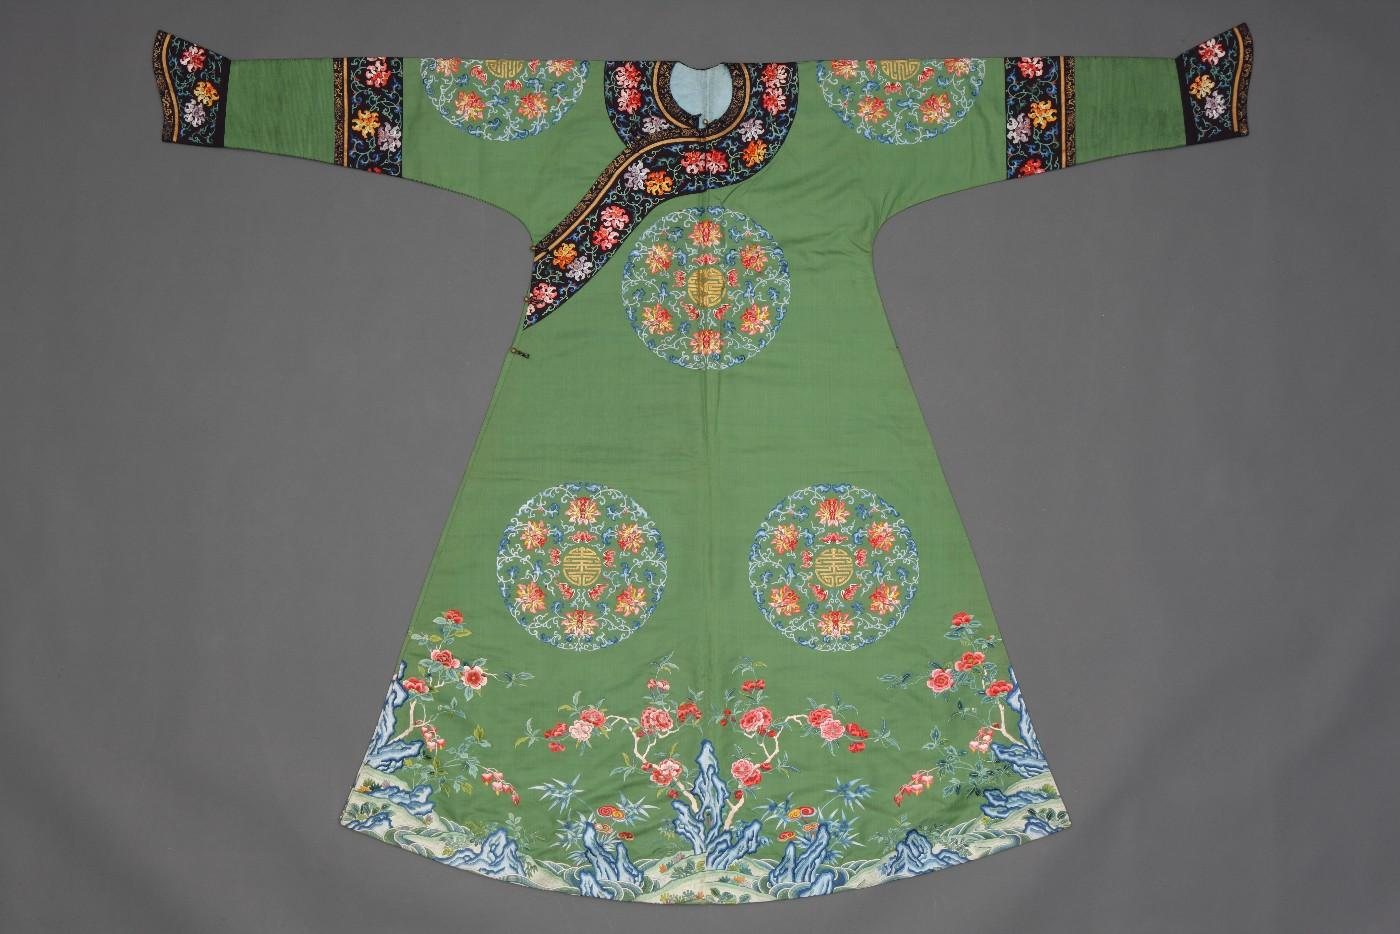 Festive robe with bats, lotuses, and the character for longevity